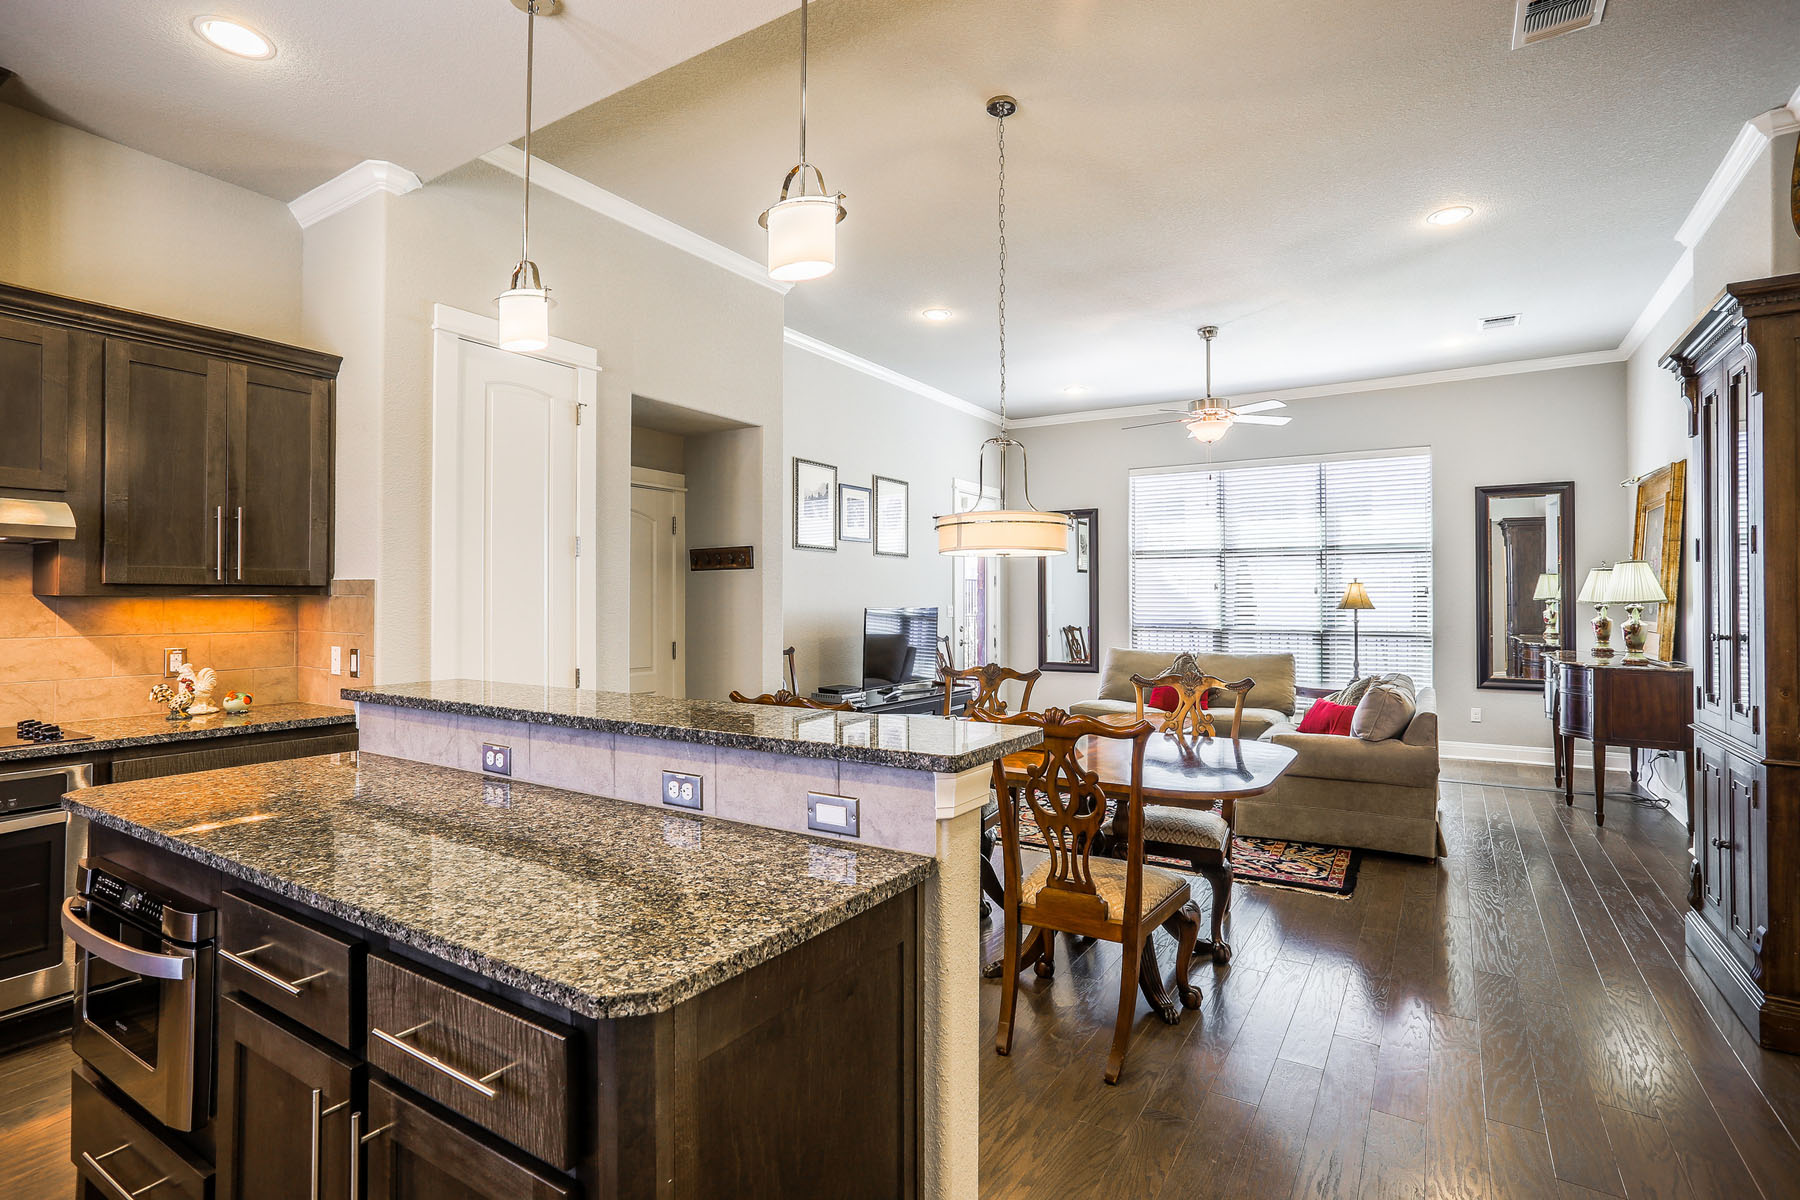 Additional photo for property listing at Lovely Lock and Leave Lifestyle in Lakeway 3606 Royal Sage Dr 23 Austin, Texas 78738 United States